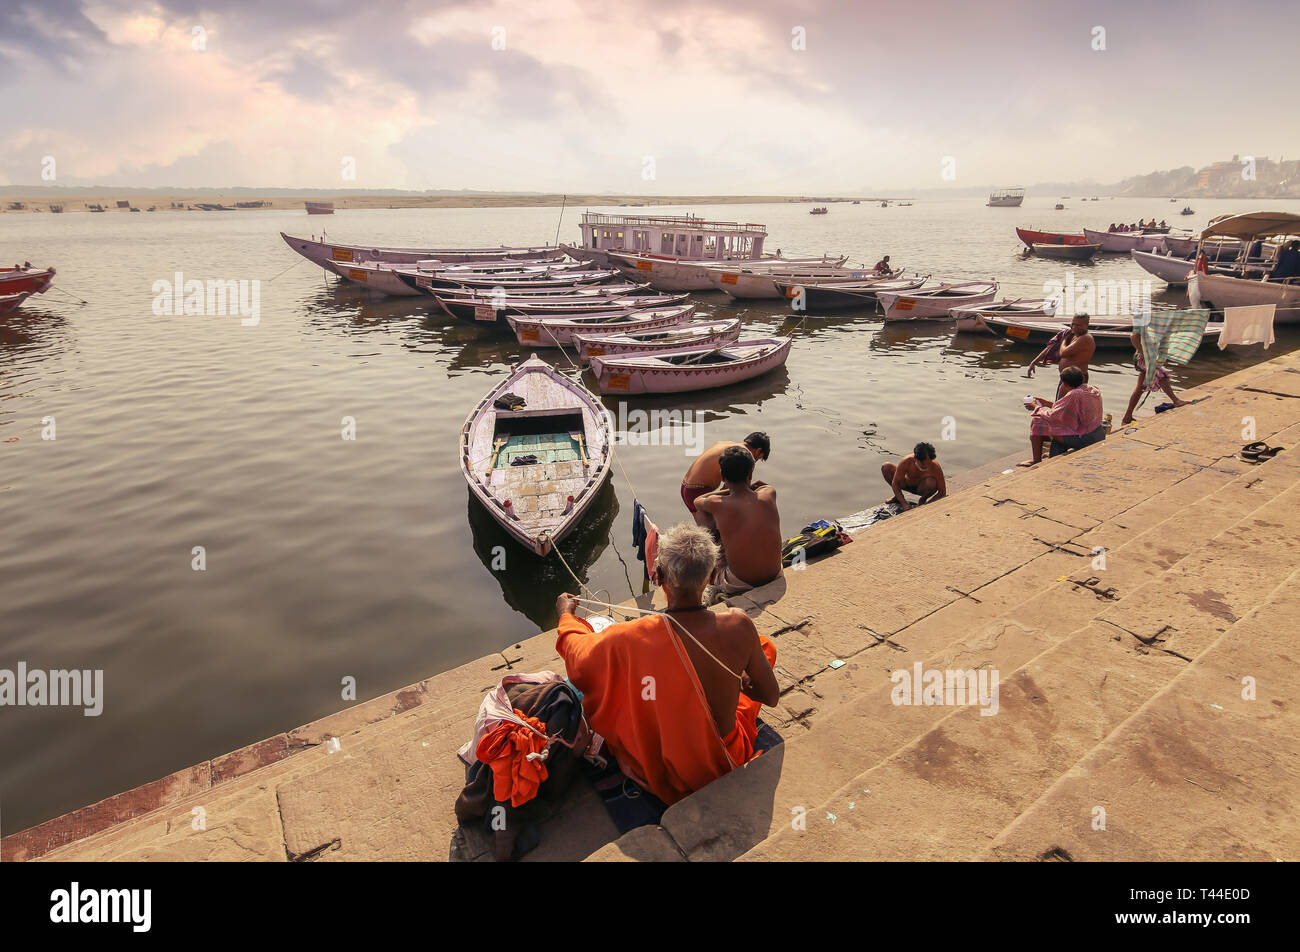 Varanasi Ganges river bank with view of wooden boats and sadhu baba sitting on the stairway. - Stock Image